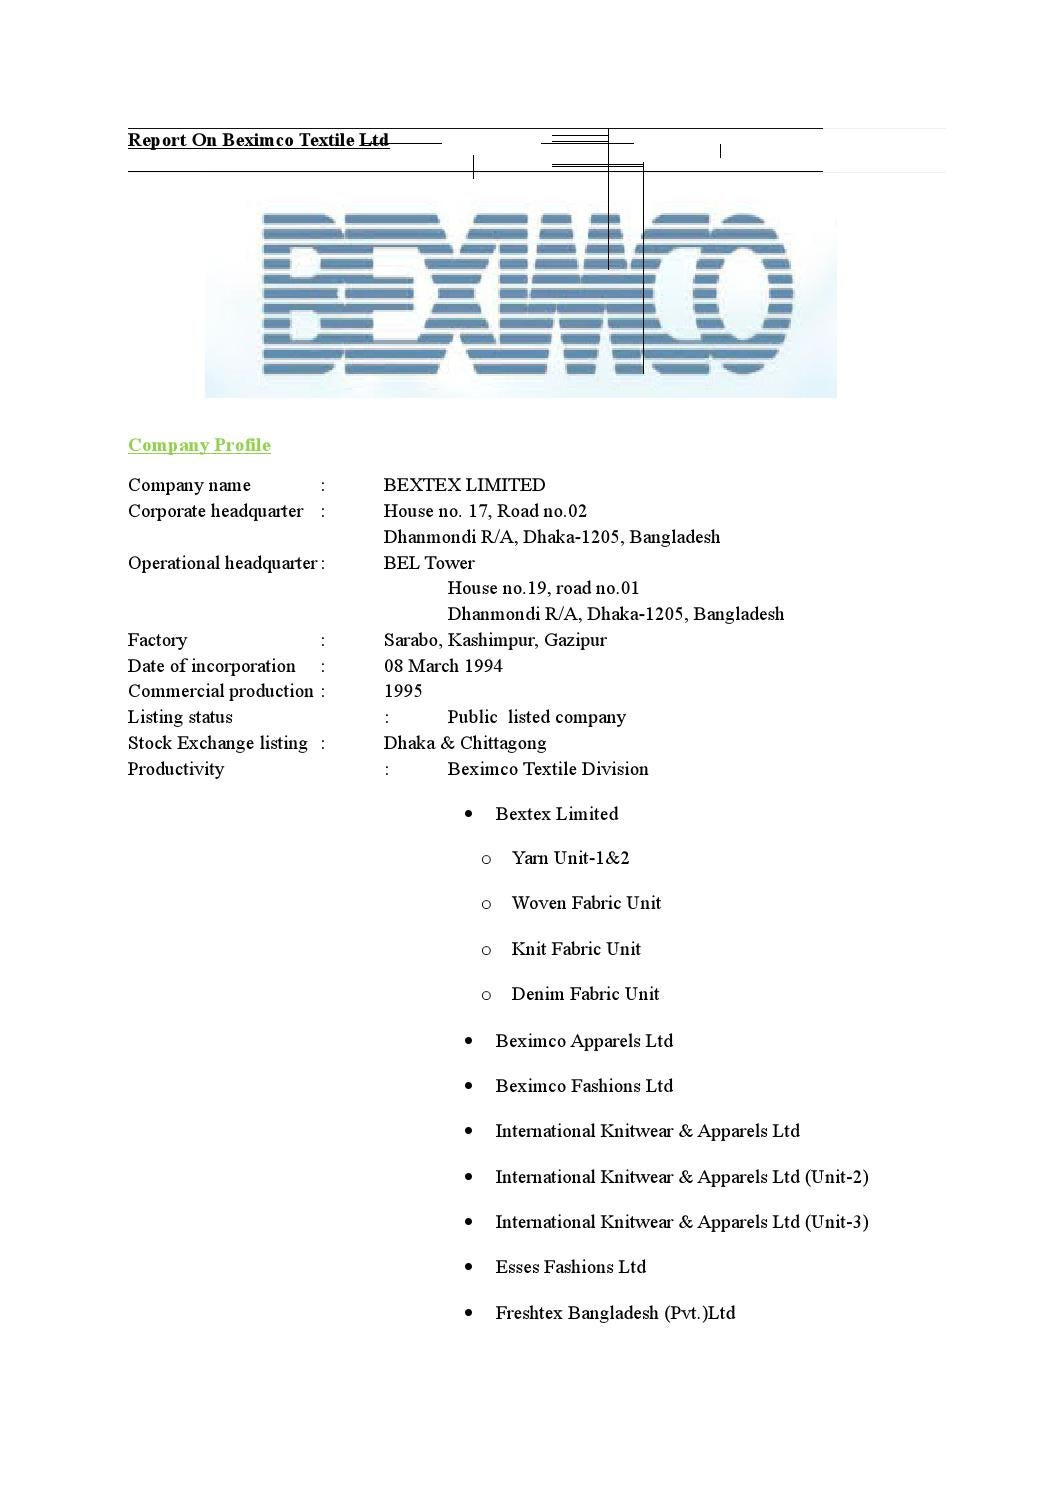 Report on beximco textile ltd by Md Papon - issuu